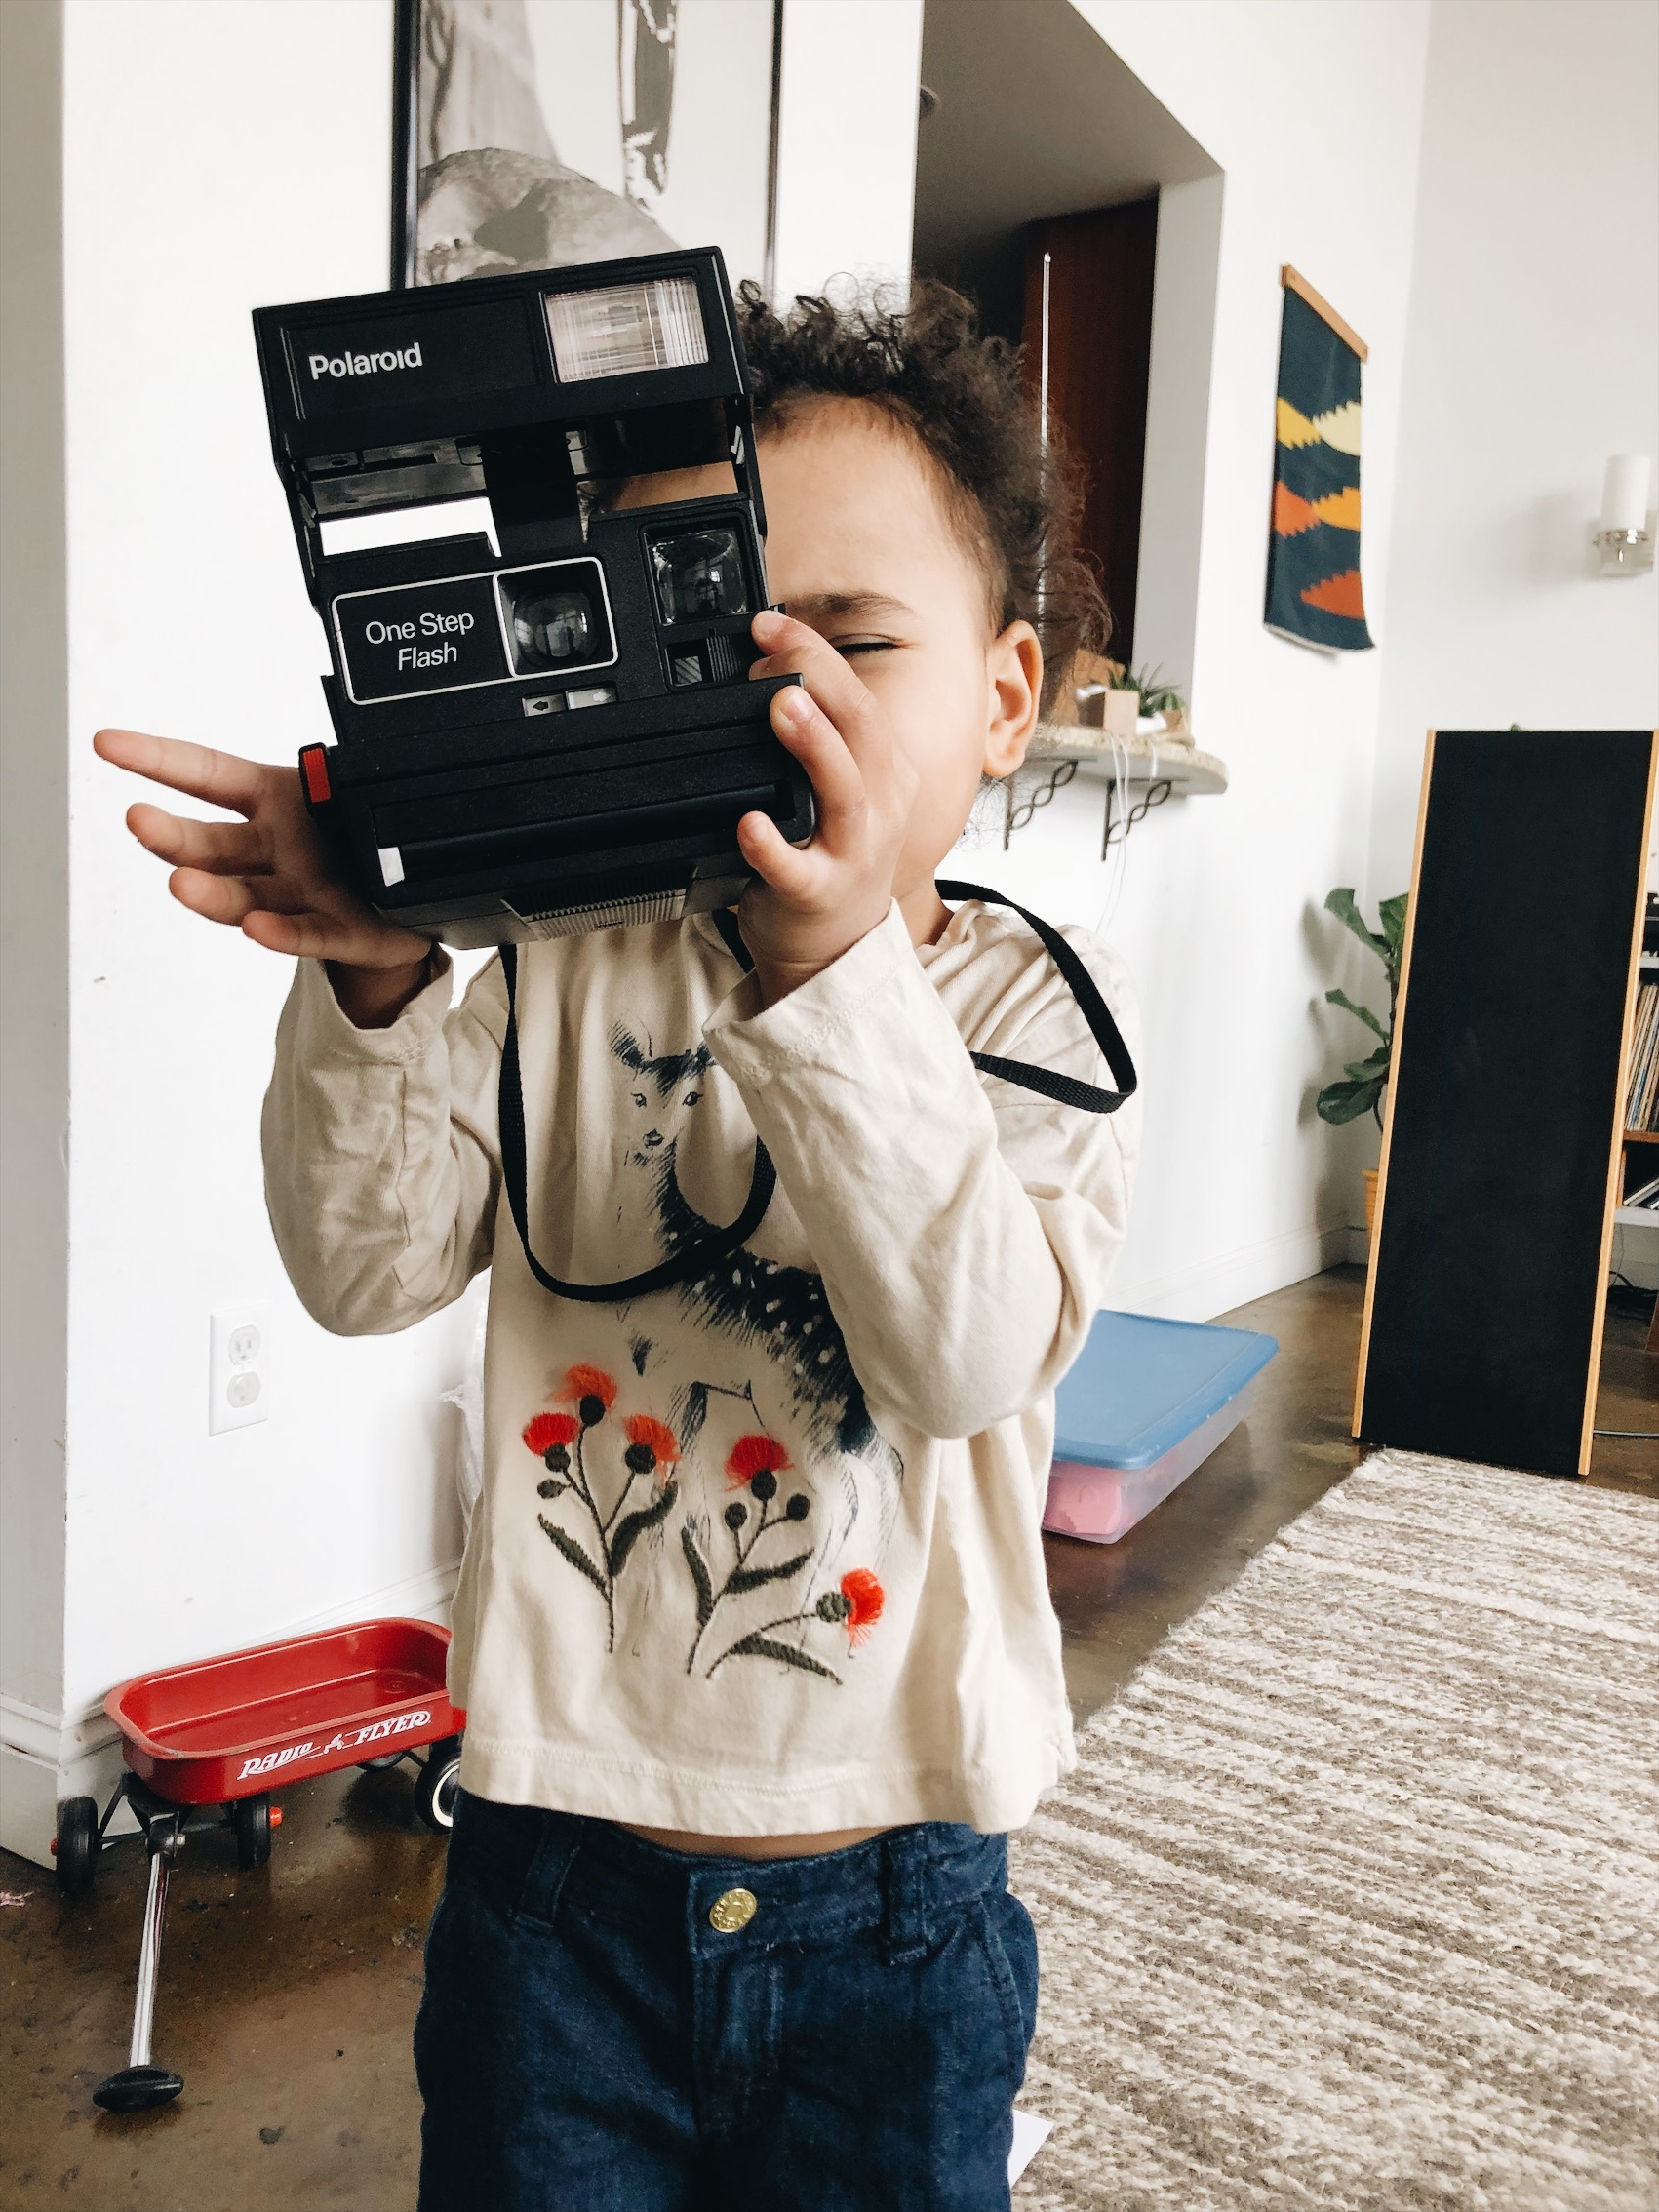 Her love for cameras